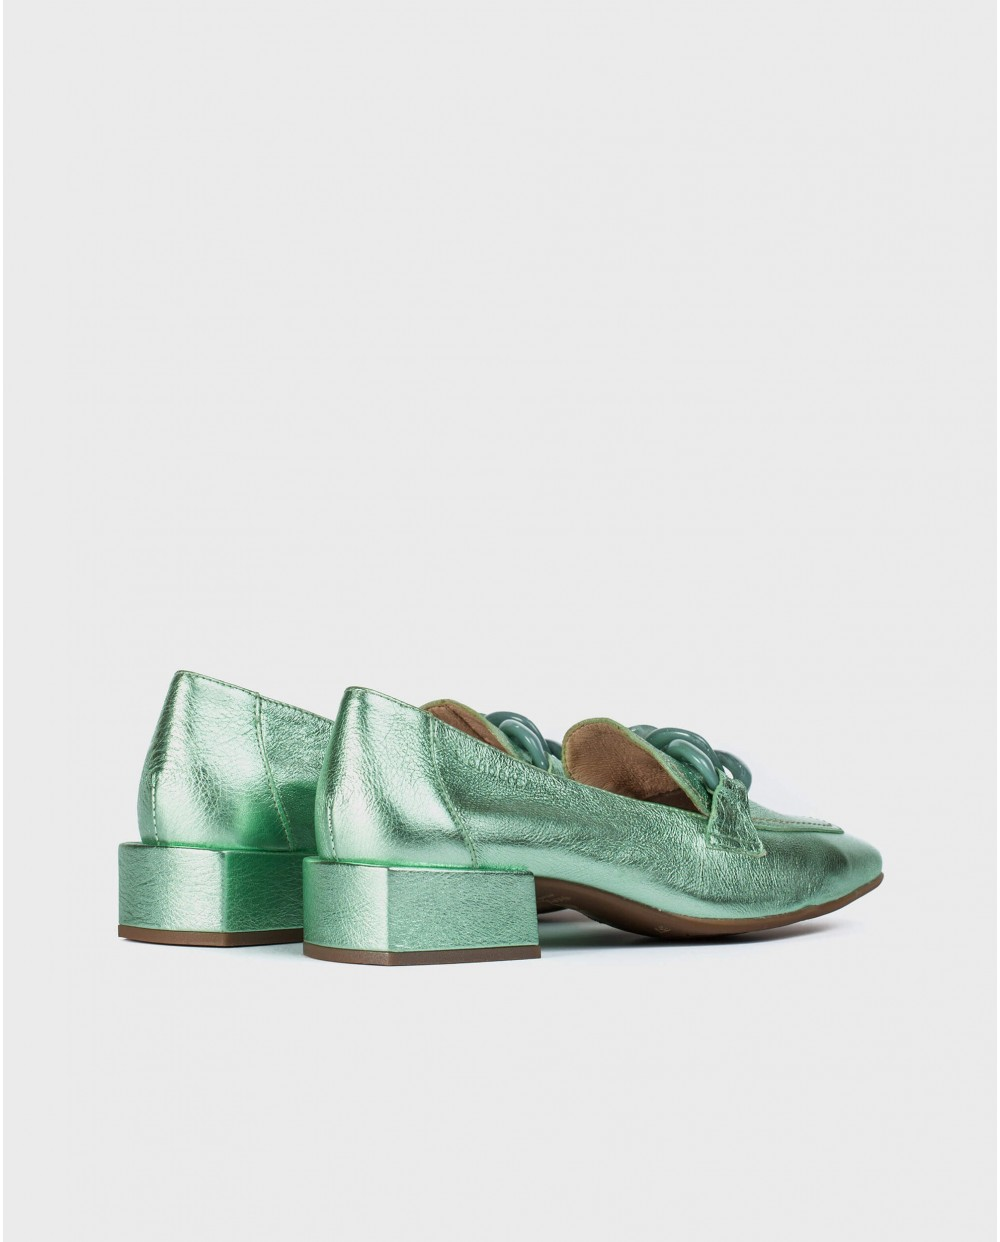 Wonders-Flat Shoes-Moccasin with chain detail